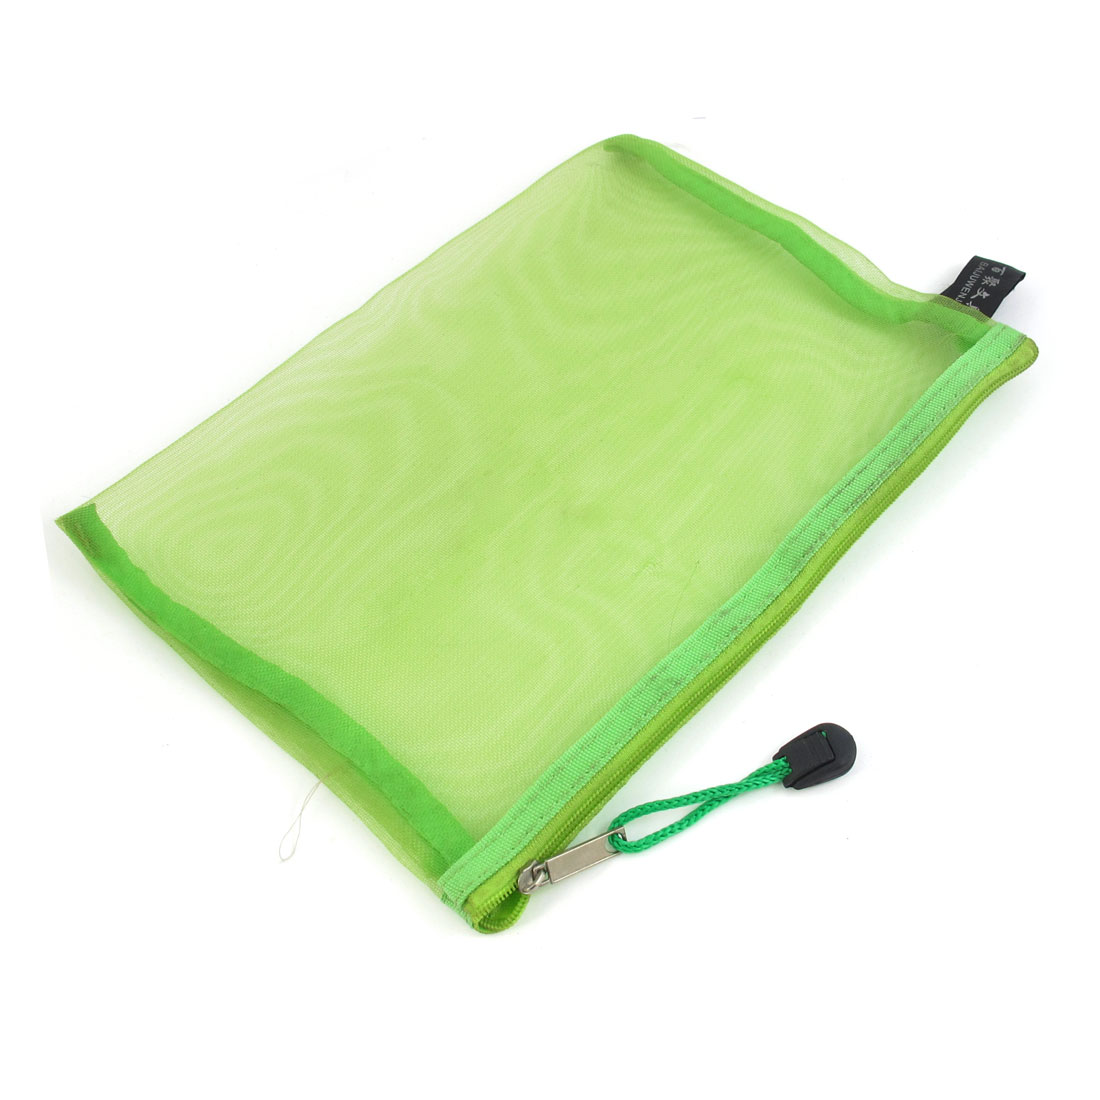 Zip Up Nylon Mesh A5 Paper Document File Pen Bag Holder Organizer Green